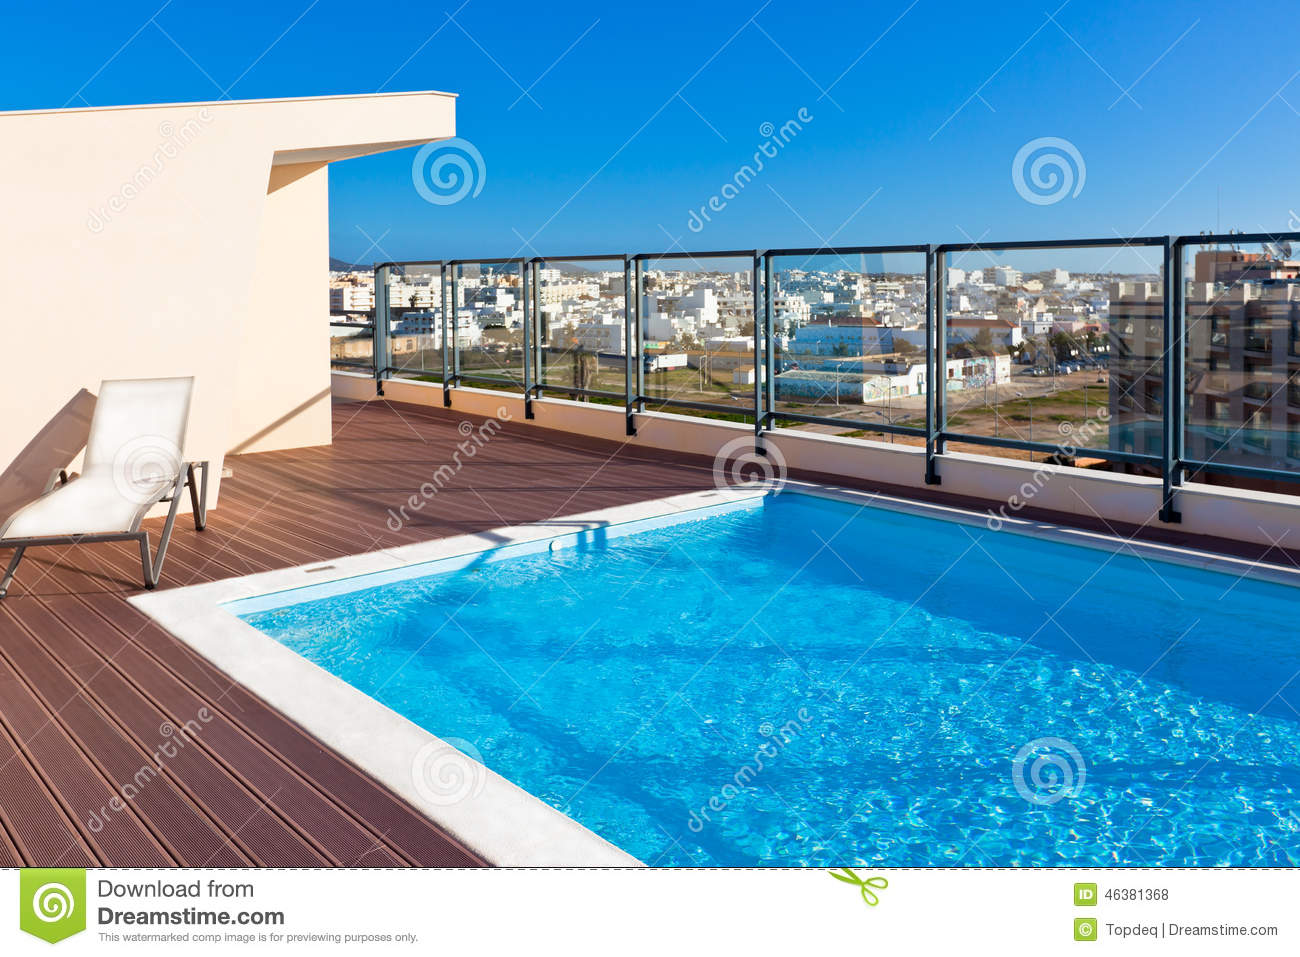 Pool On Roof Detail : Outdoor swimming pool at the house roof stock photo